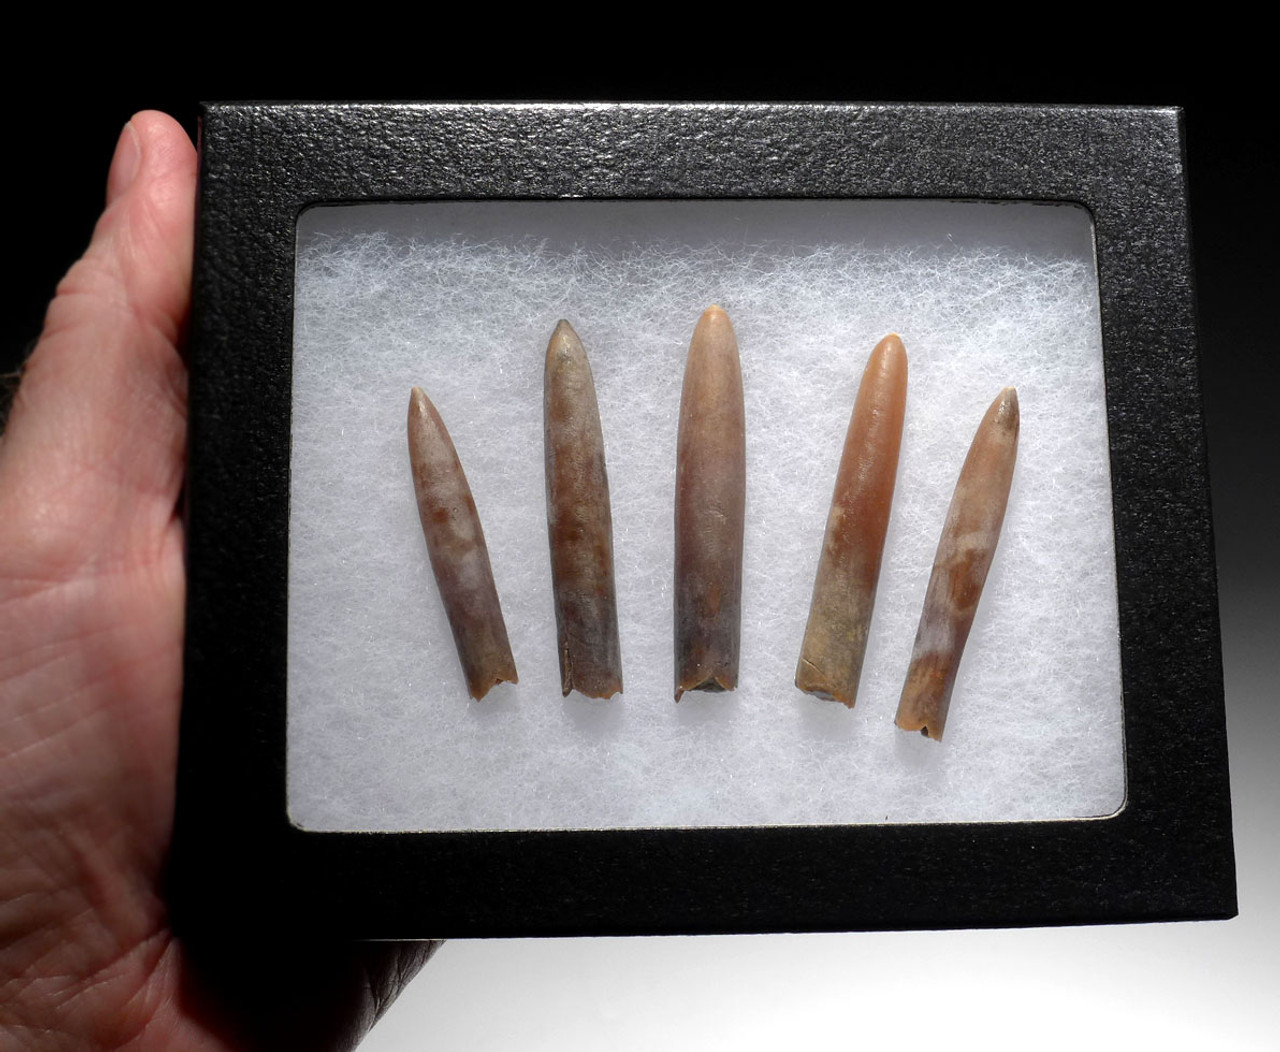 FIVE TRANSLUCENT CALCITE BELEMNITE FOSSILS OF GONIOTEUTHIS FROM THE DINOSAUR DAYS *BEL113